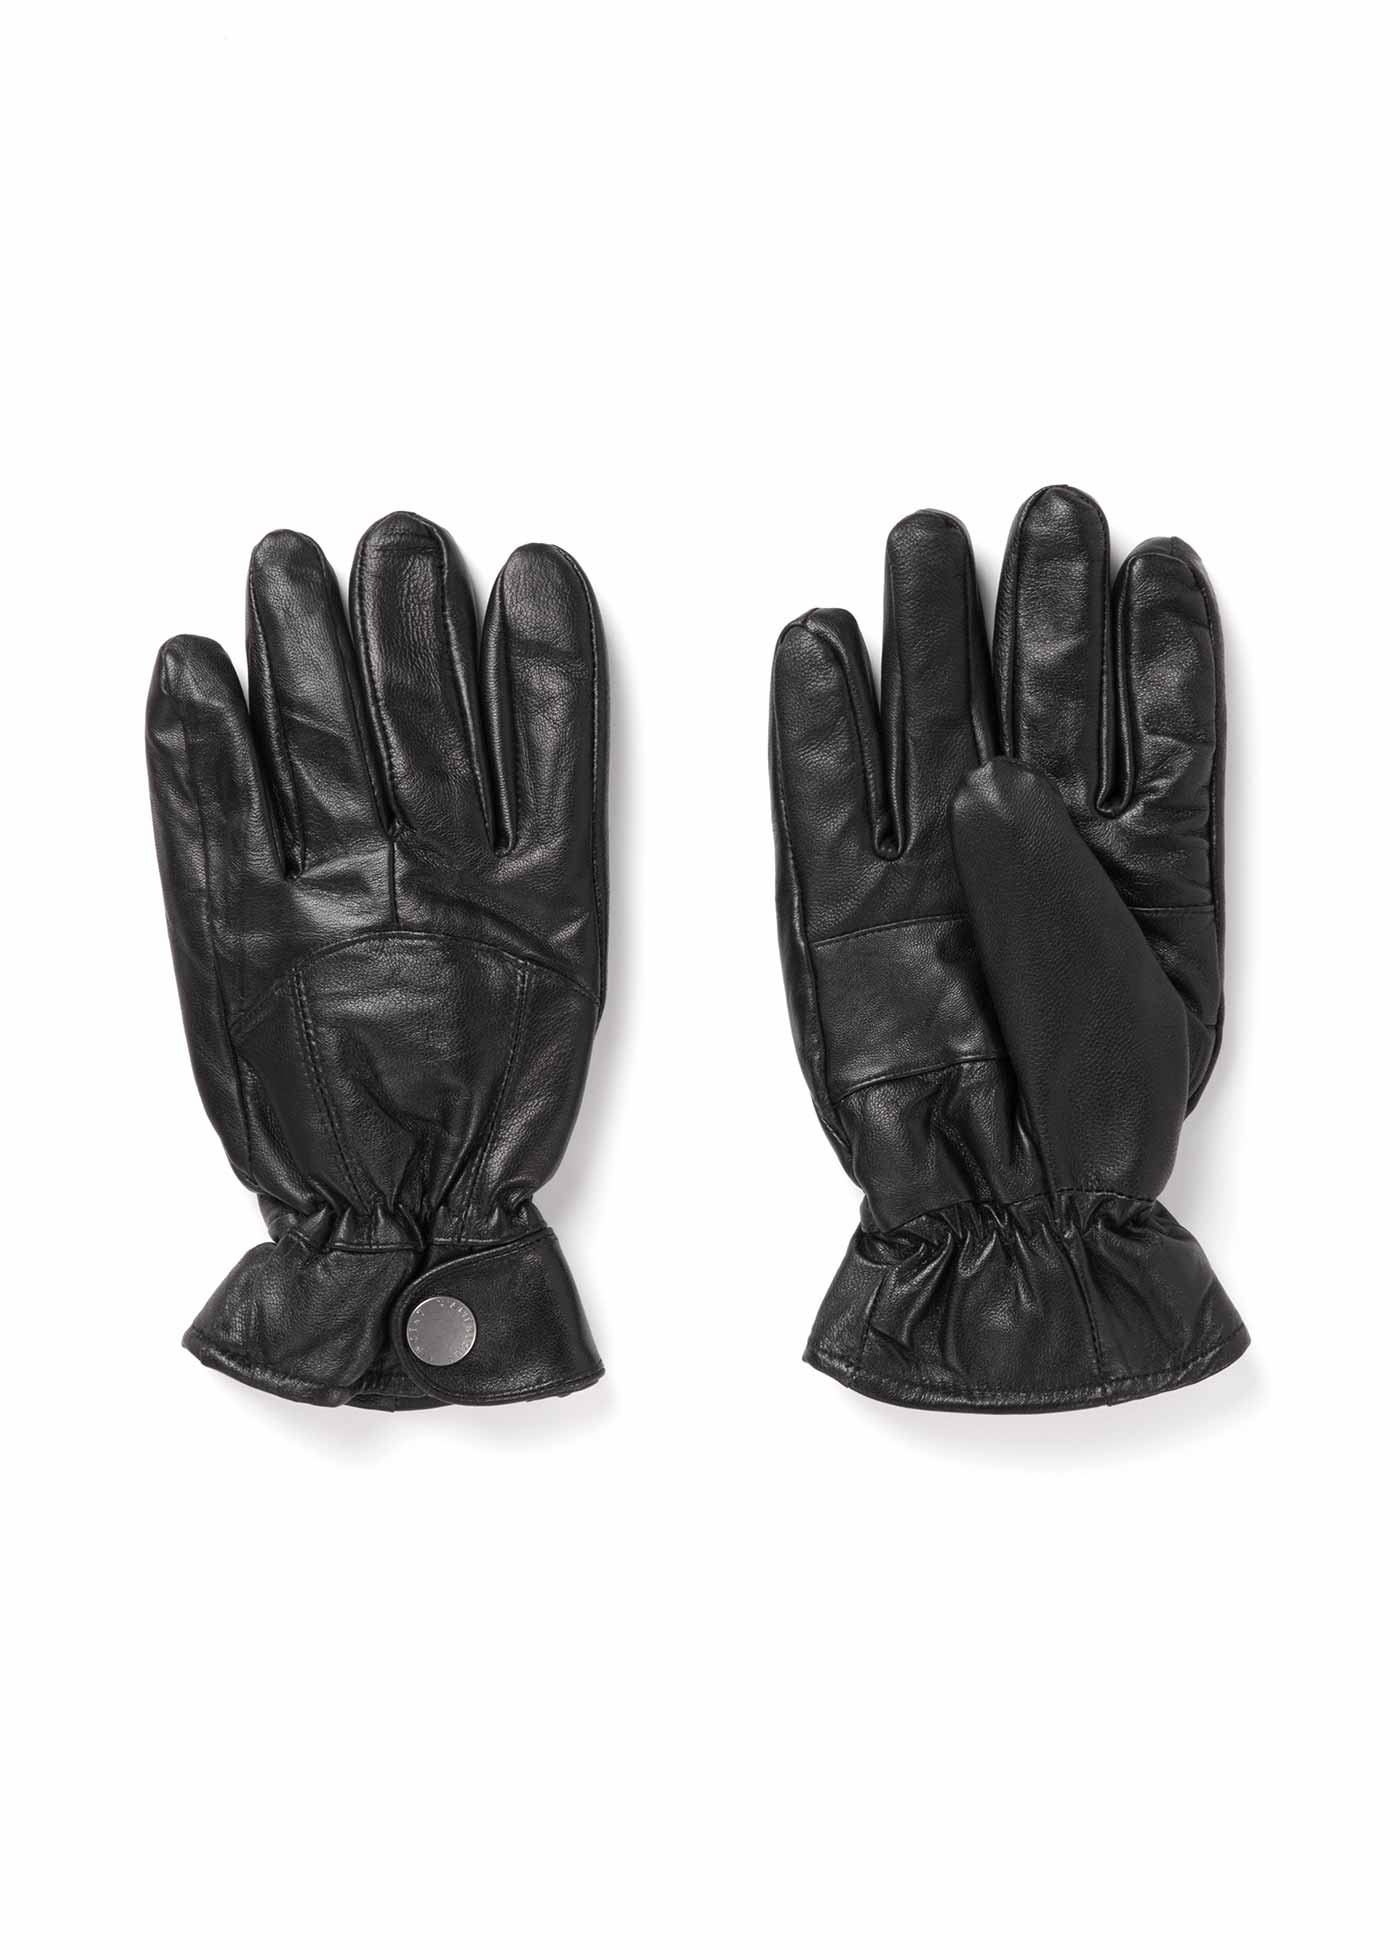 Adjustable leather glove